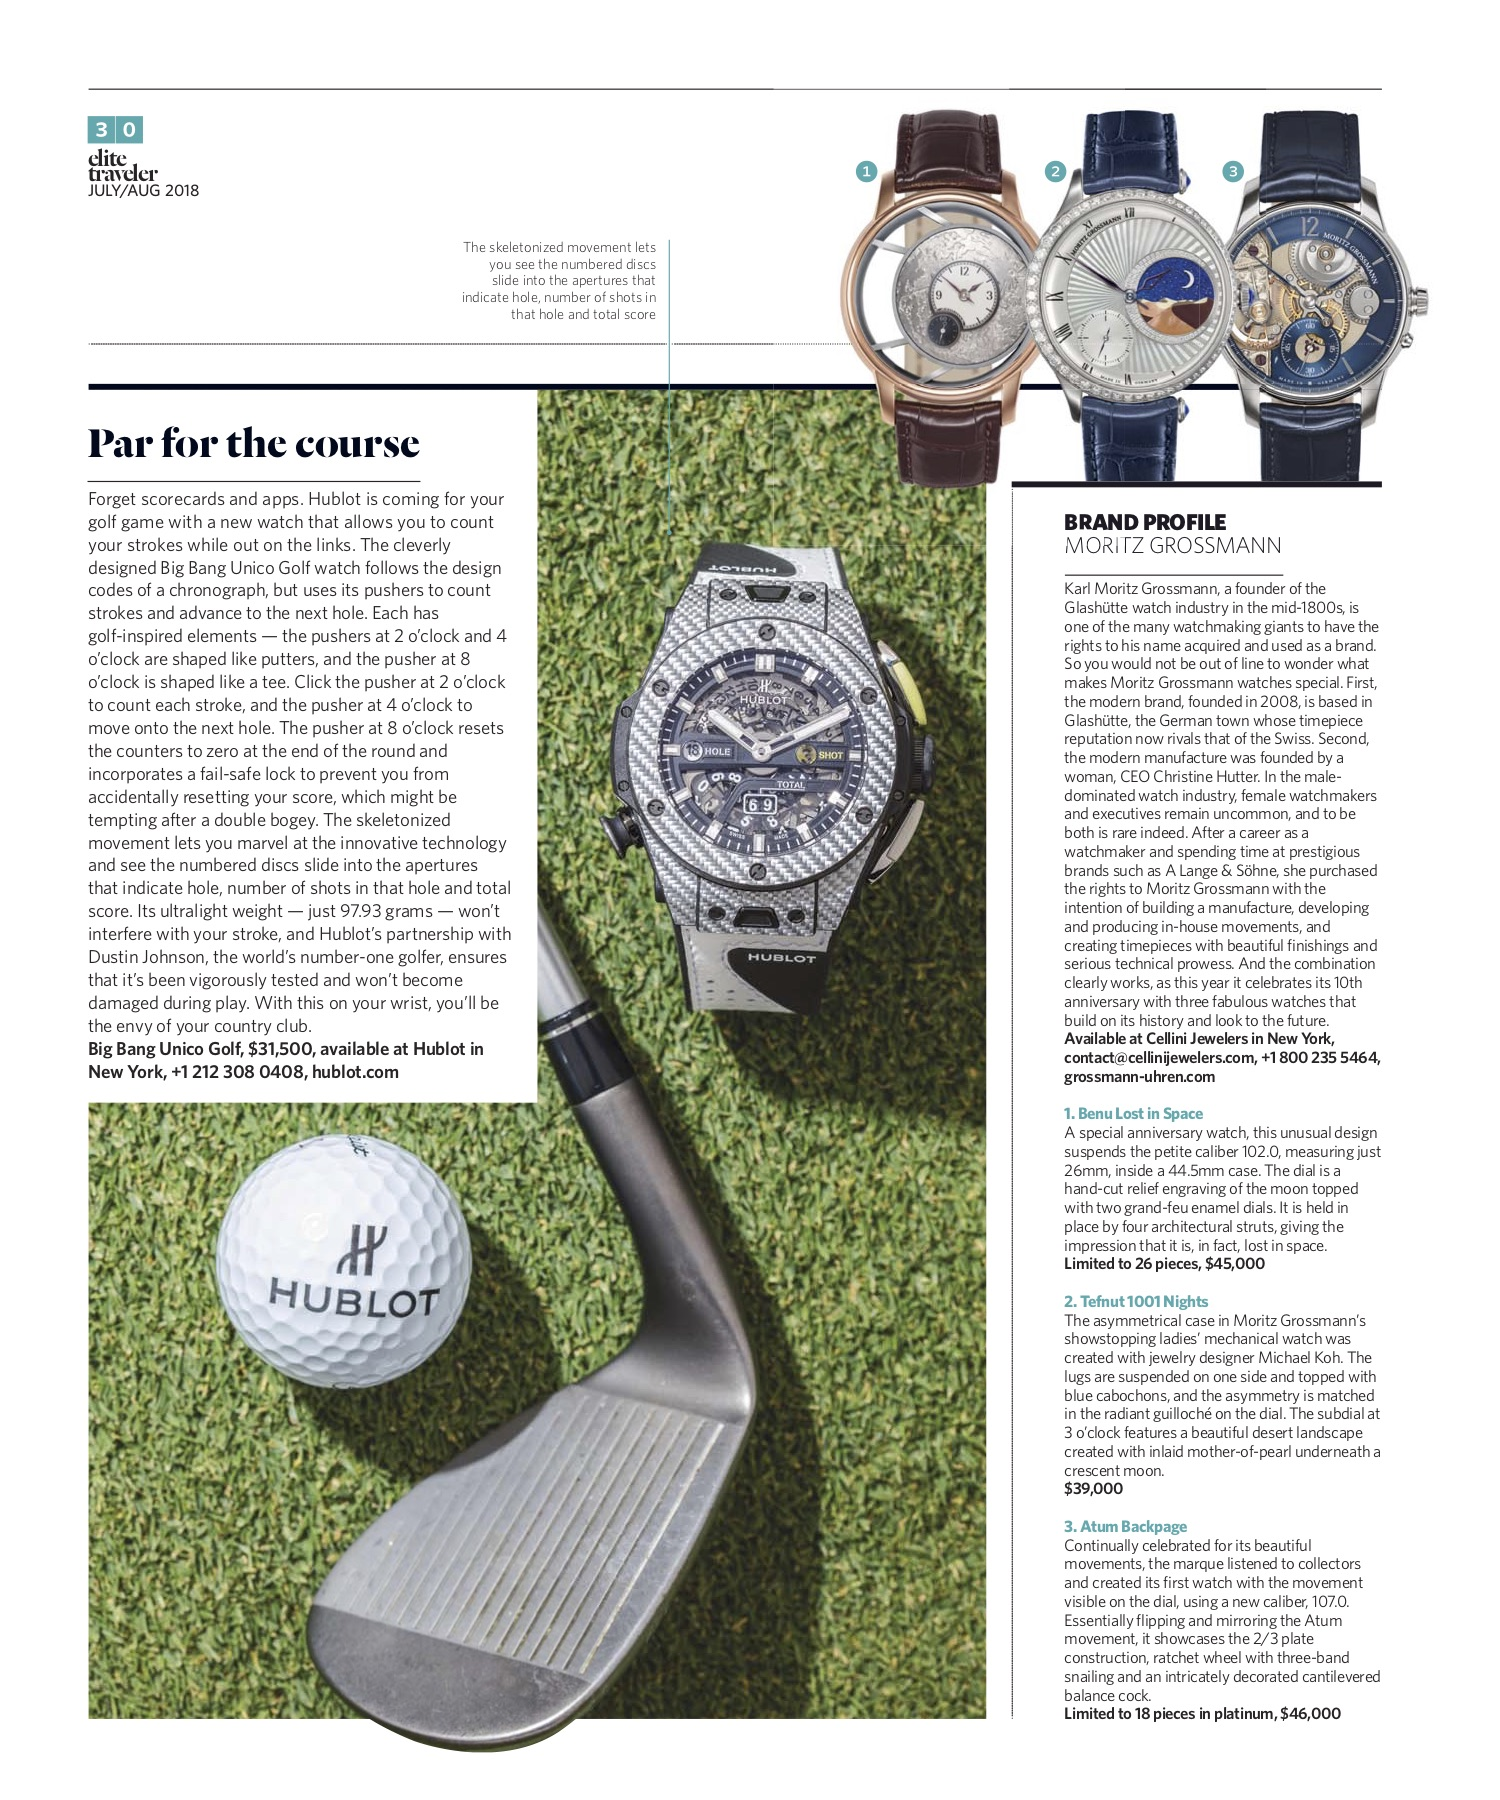 July/August 2018 | Hublot Big Bang Unico Golf, Moritz Grossmann Profile